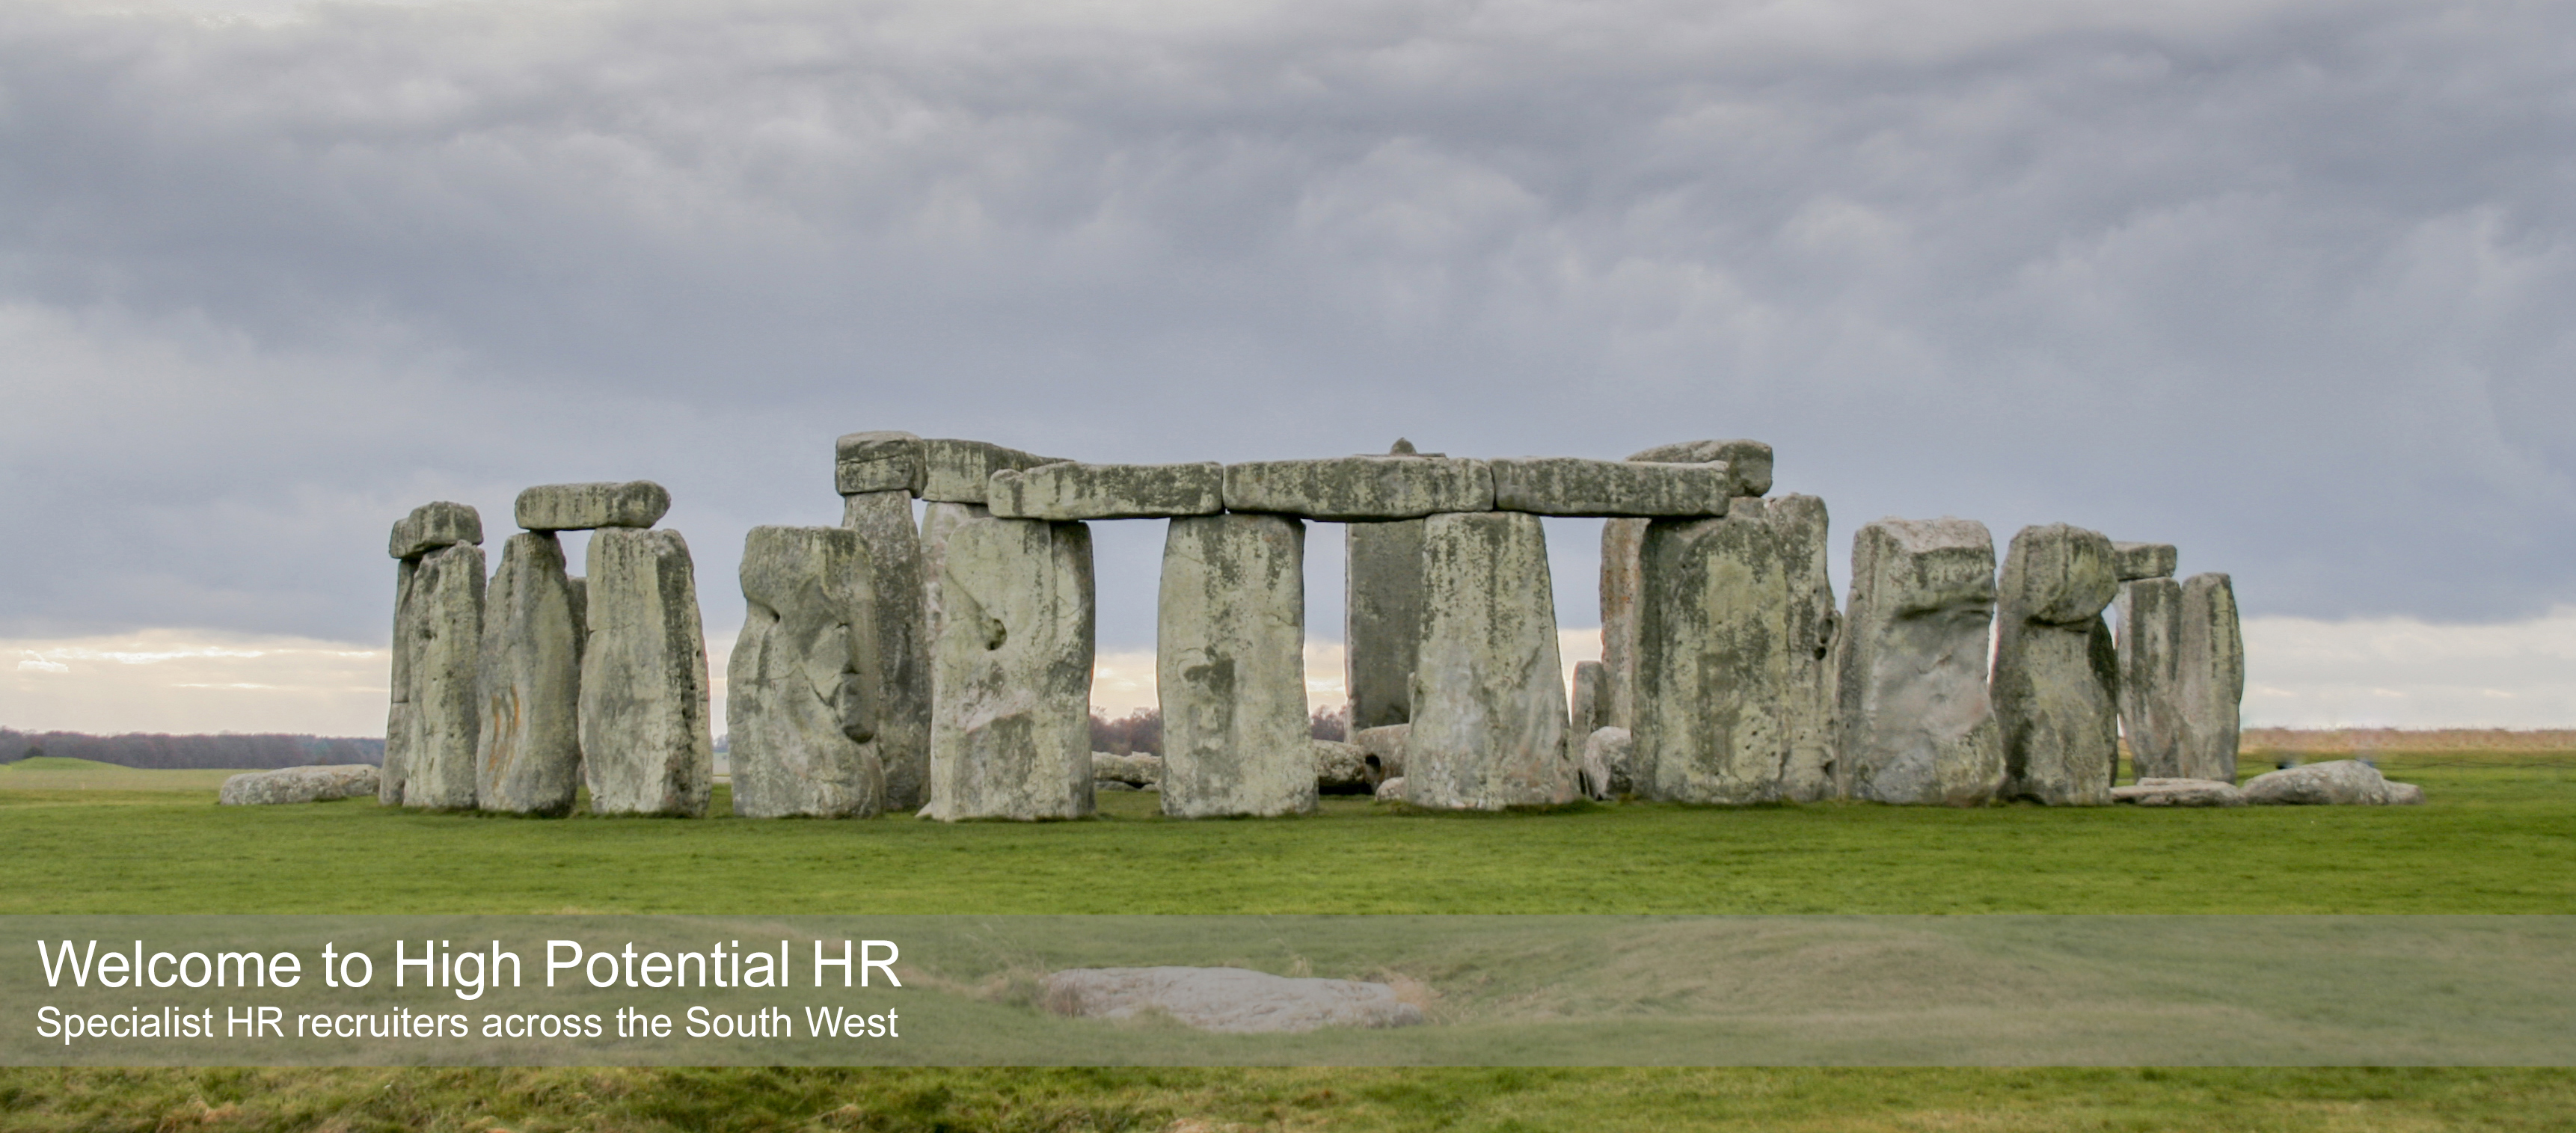 Specialist HR recruiters across Wiltshire